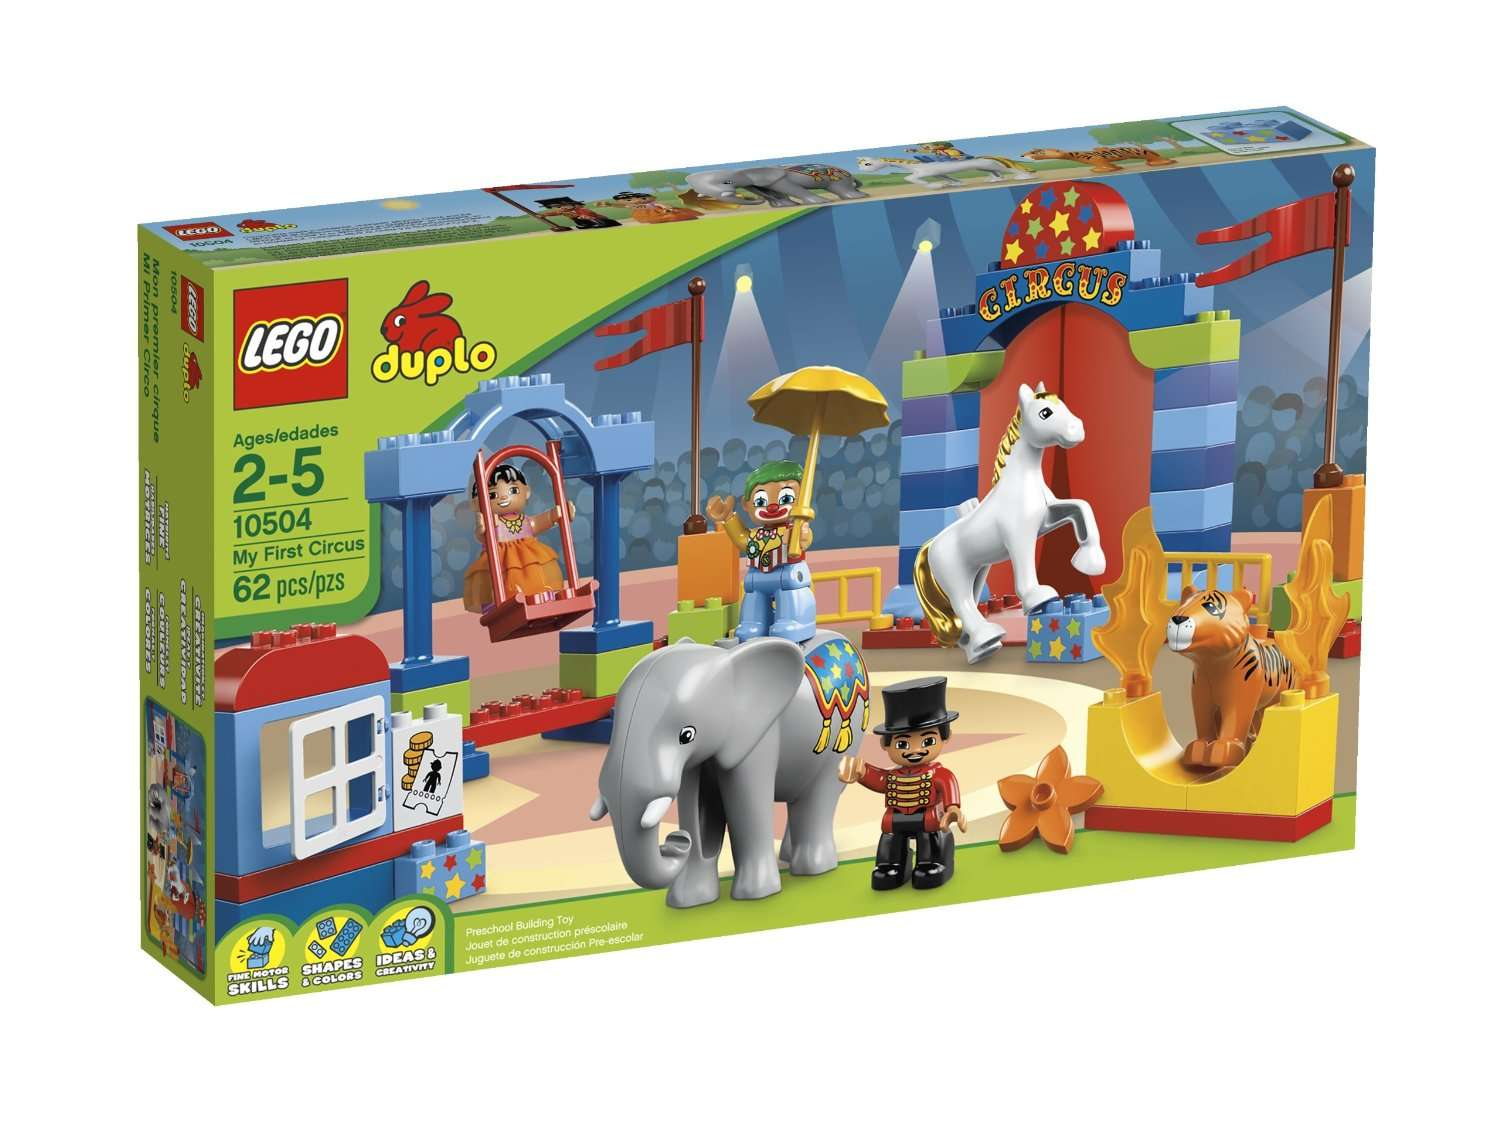 LEGO DUPLO My First Circus 10504 (Dented Box)